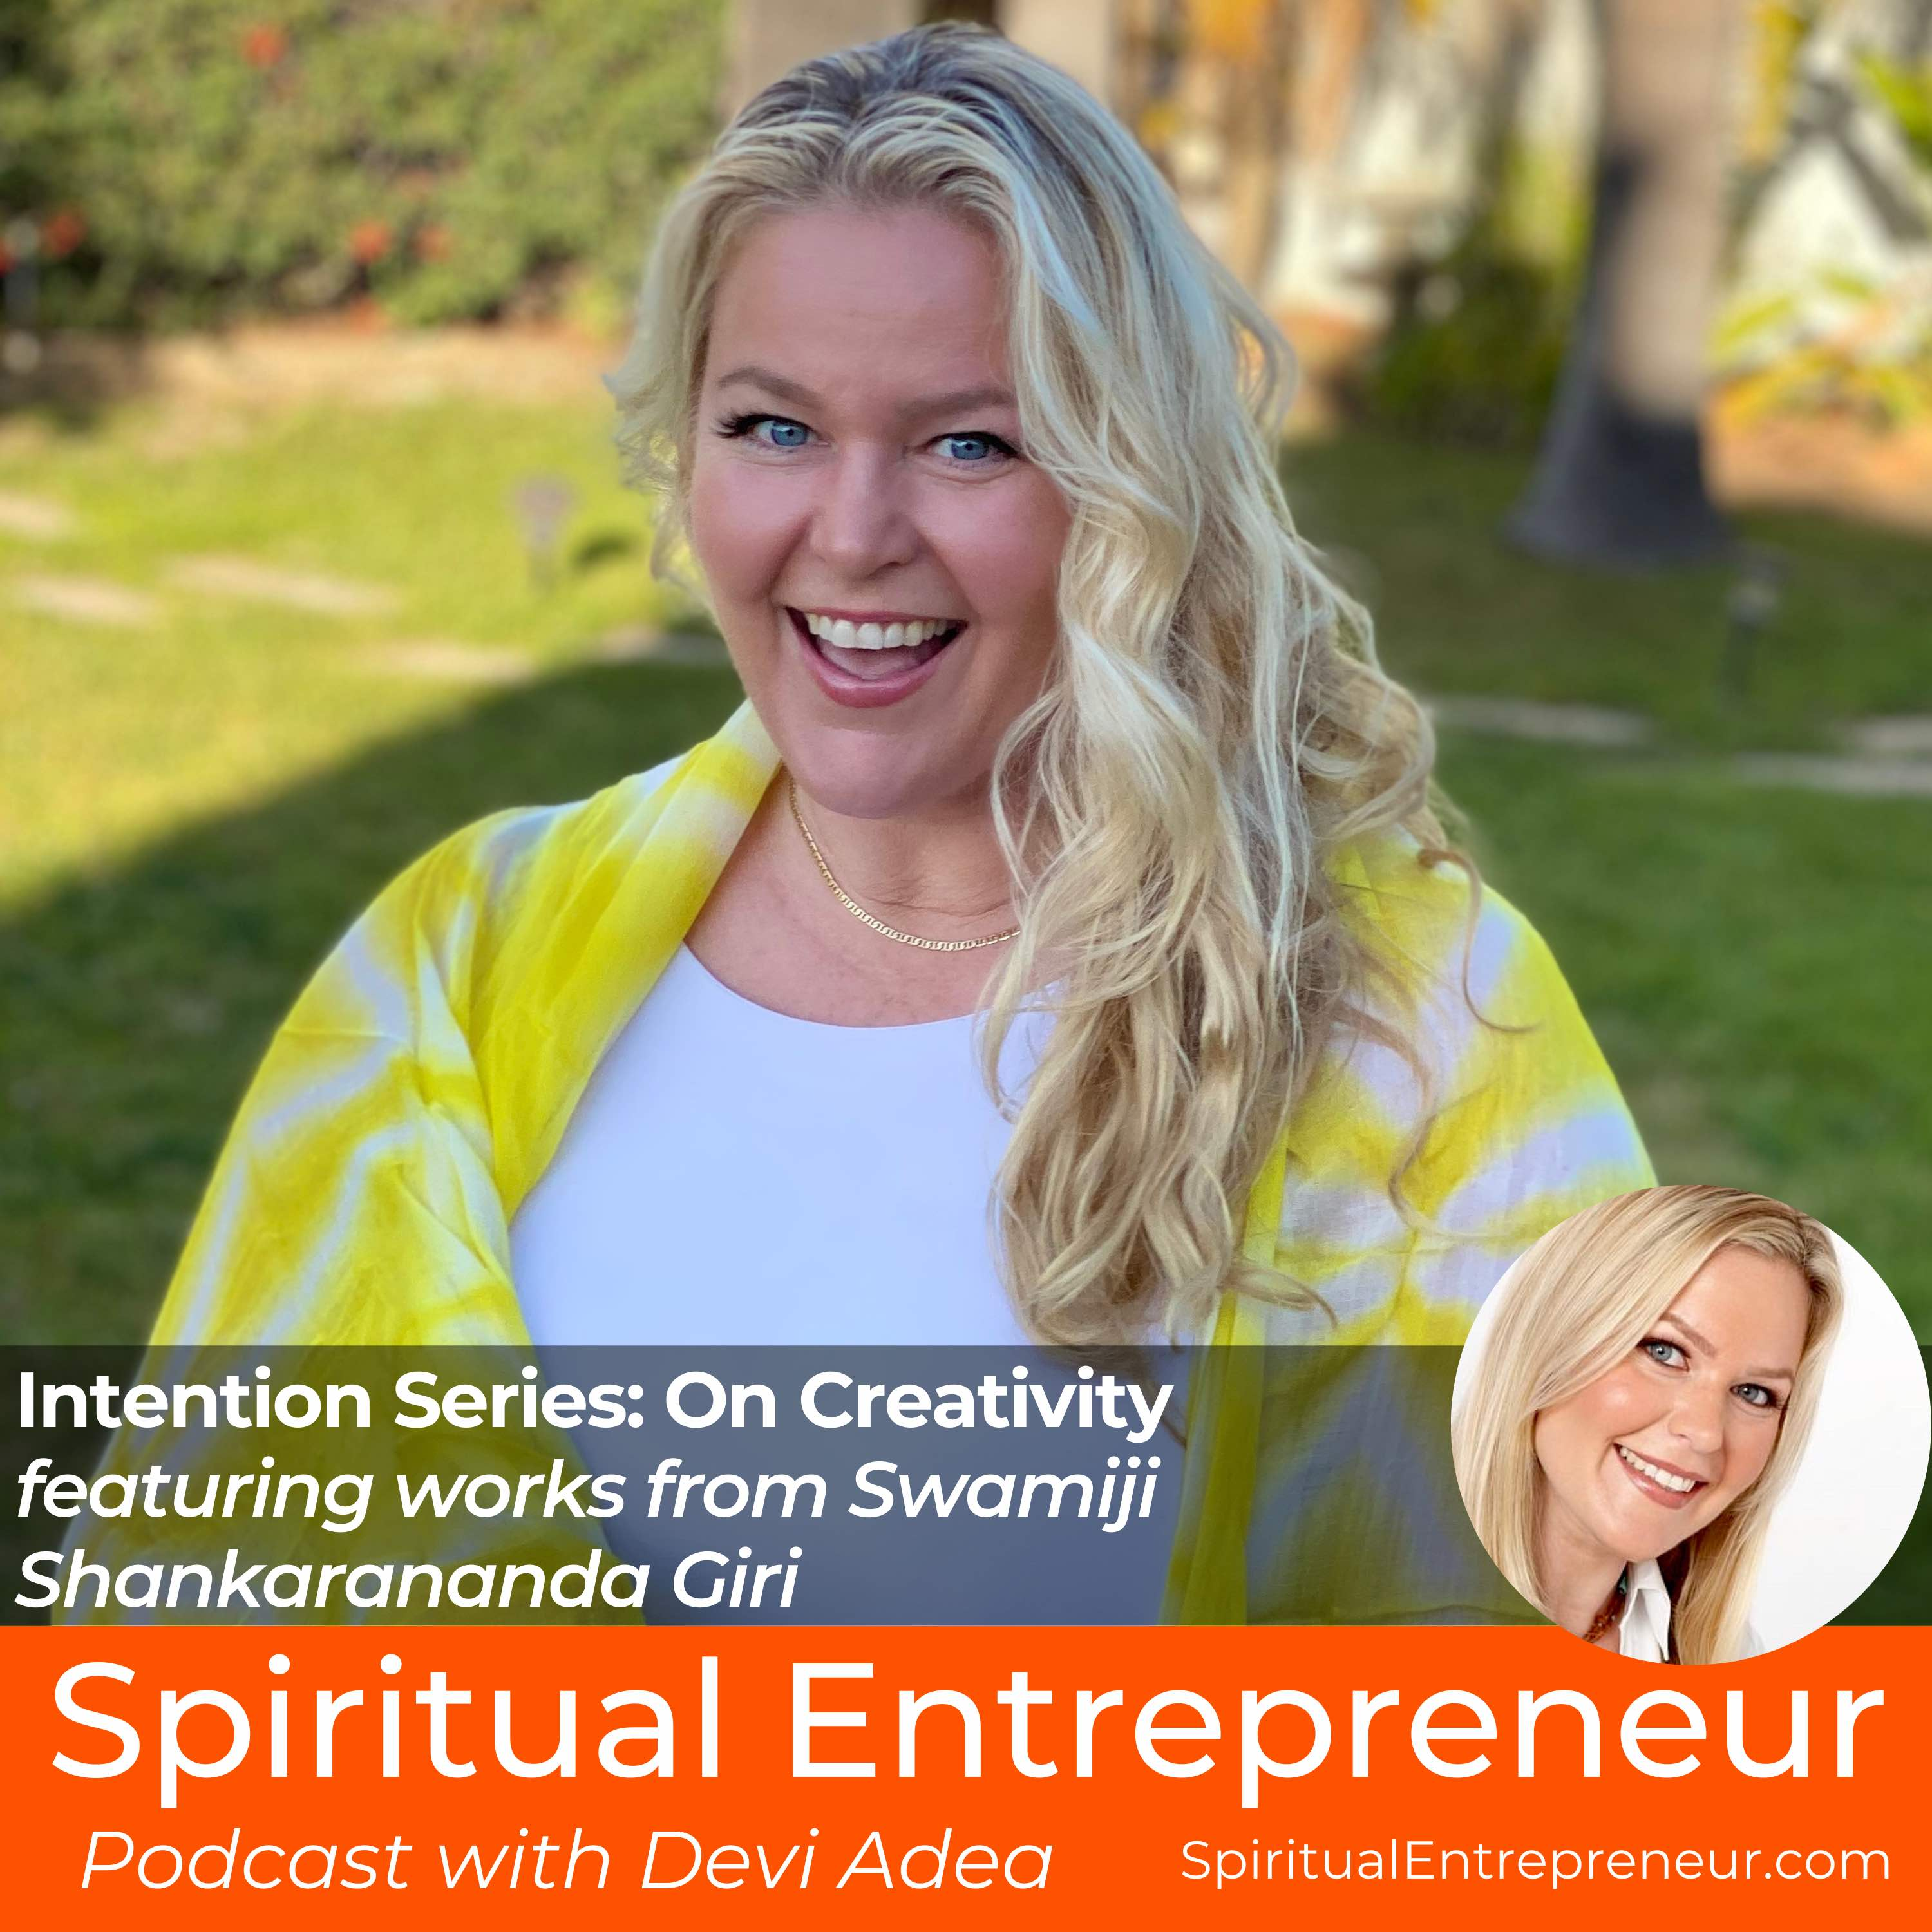 EP 257: Intention Series - On Creativity and Imagination featuring works from Swamiji Shankarananda Giri